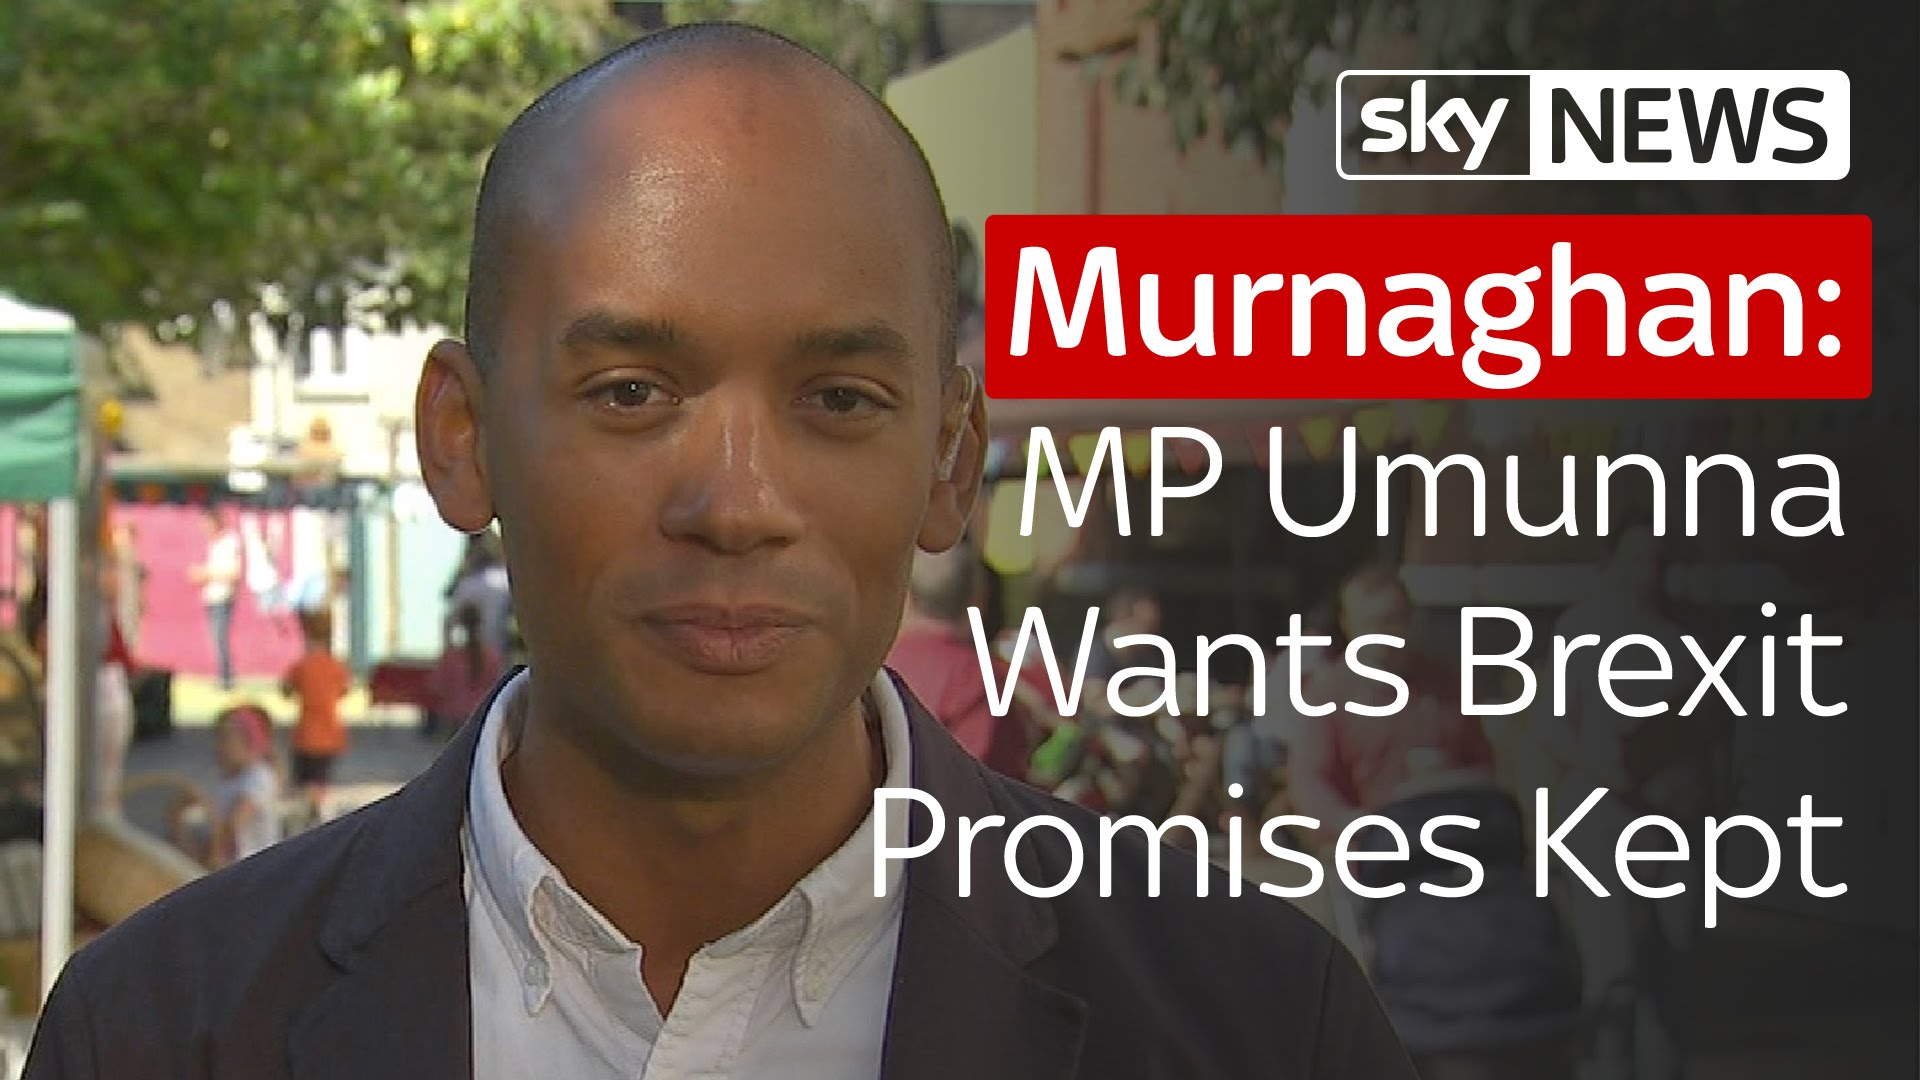 Labour MP Umunna Wants Brexit Promises Kept 10